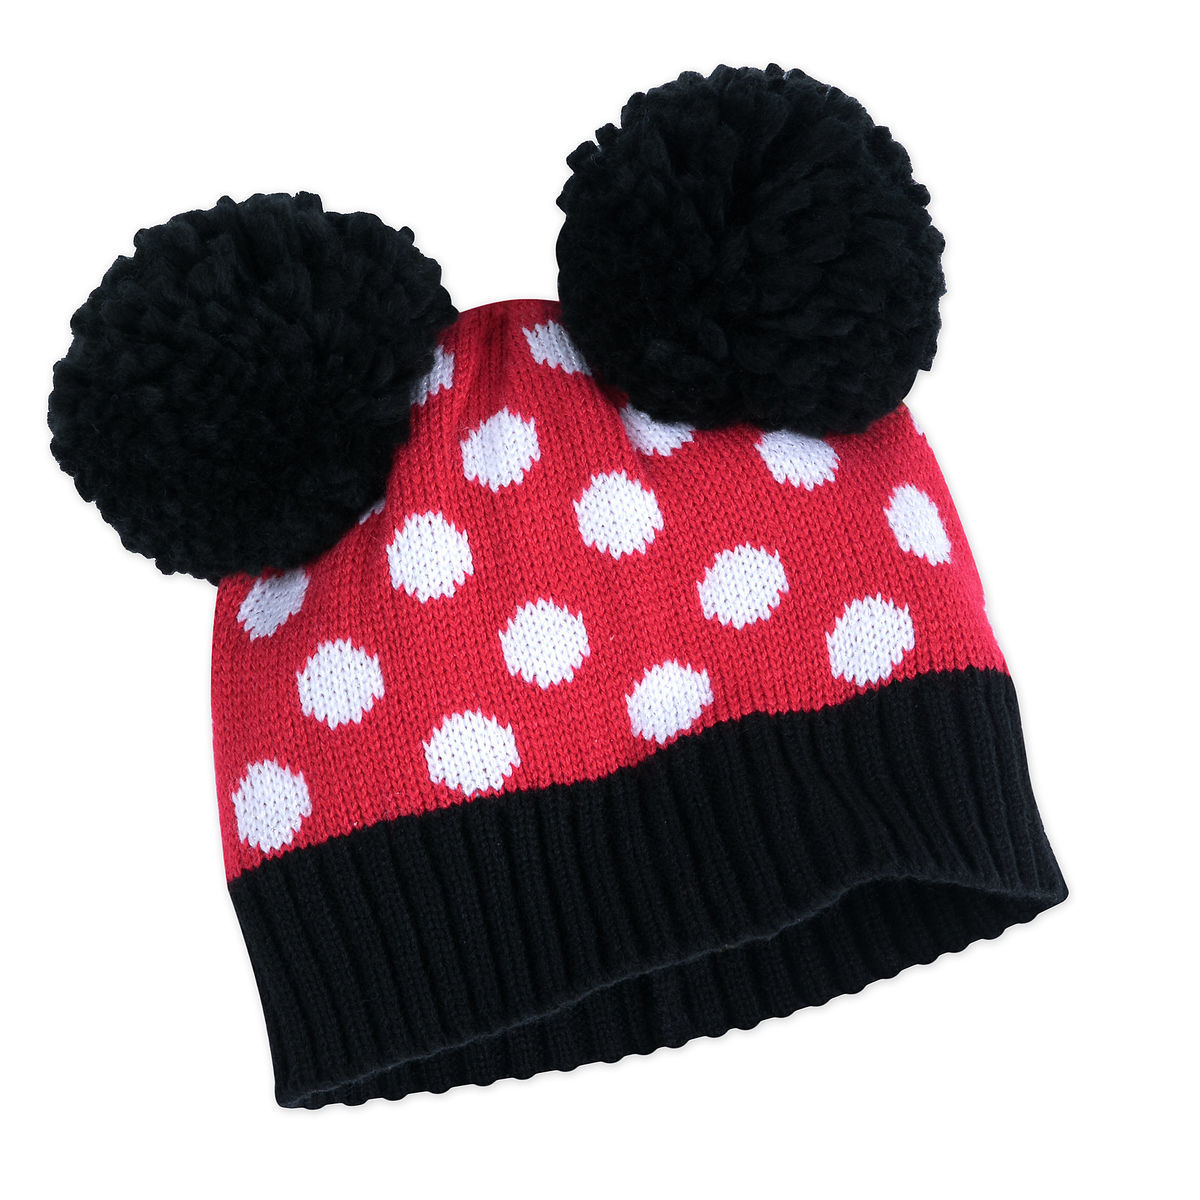 Minnie Mouse Hat and Glove Set for Kids  a4a0afd7f0a3